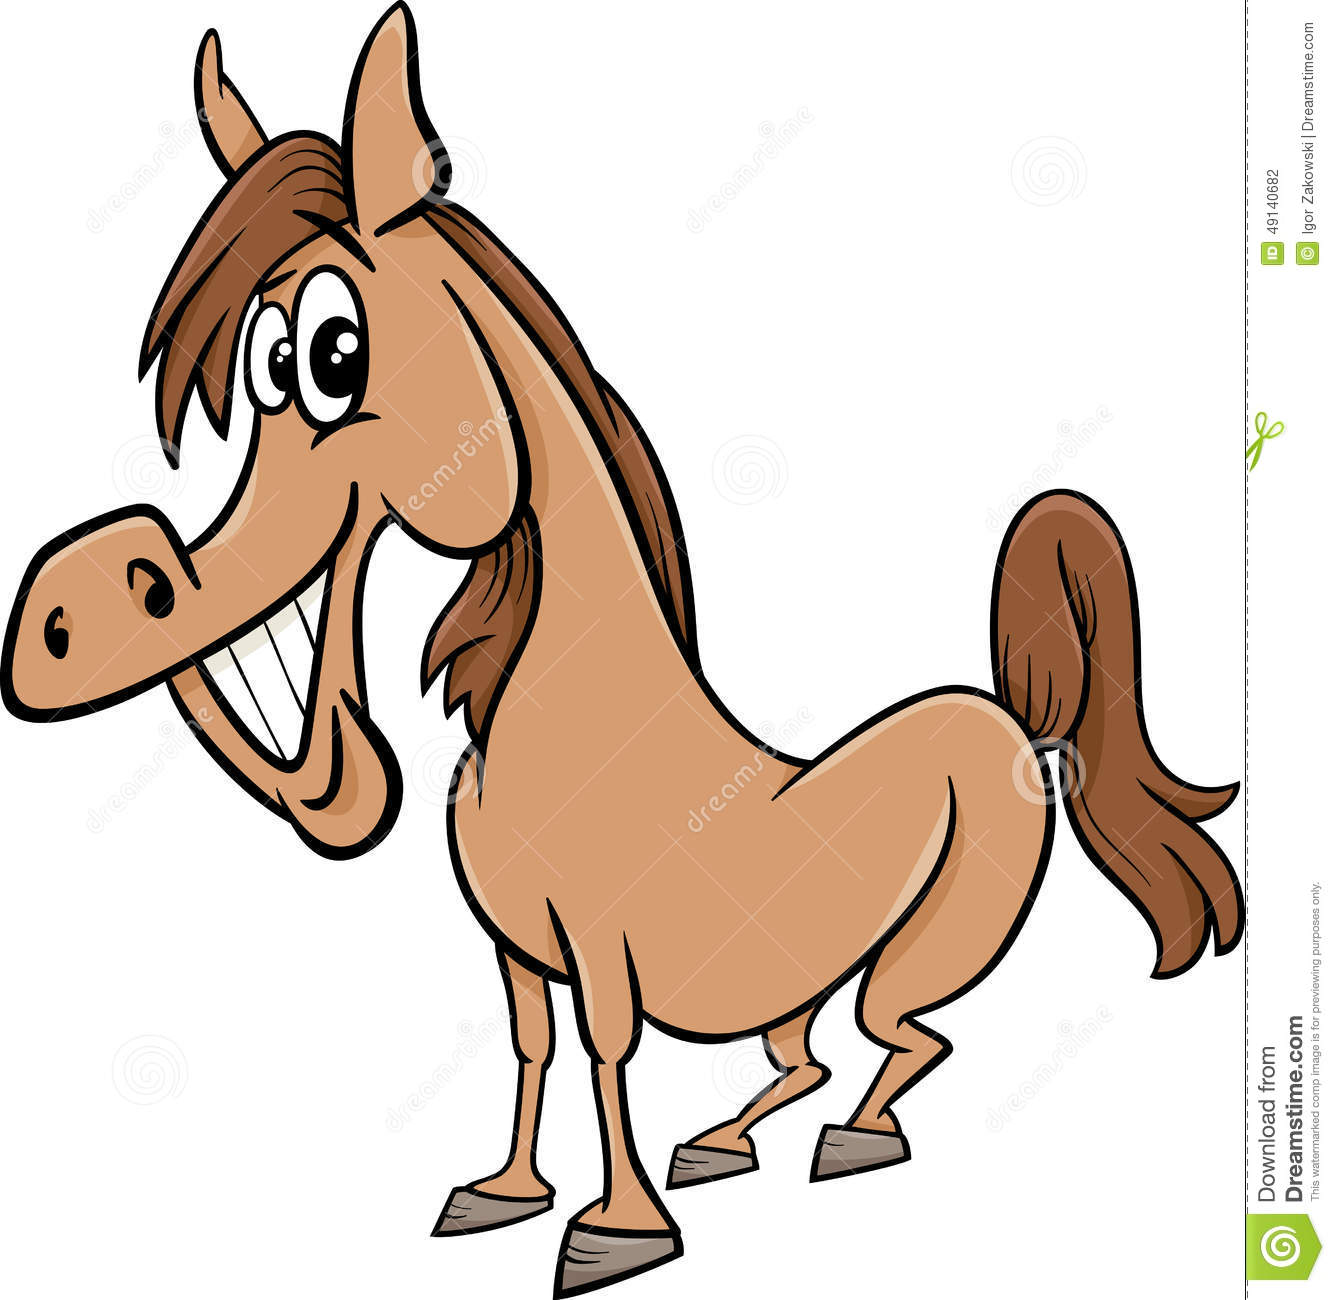 how to draw a horse funny